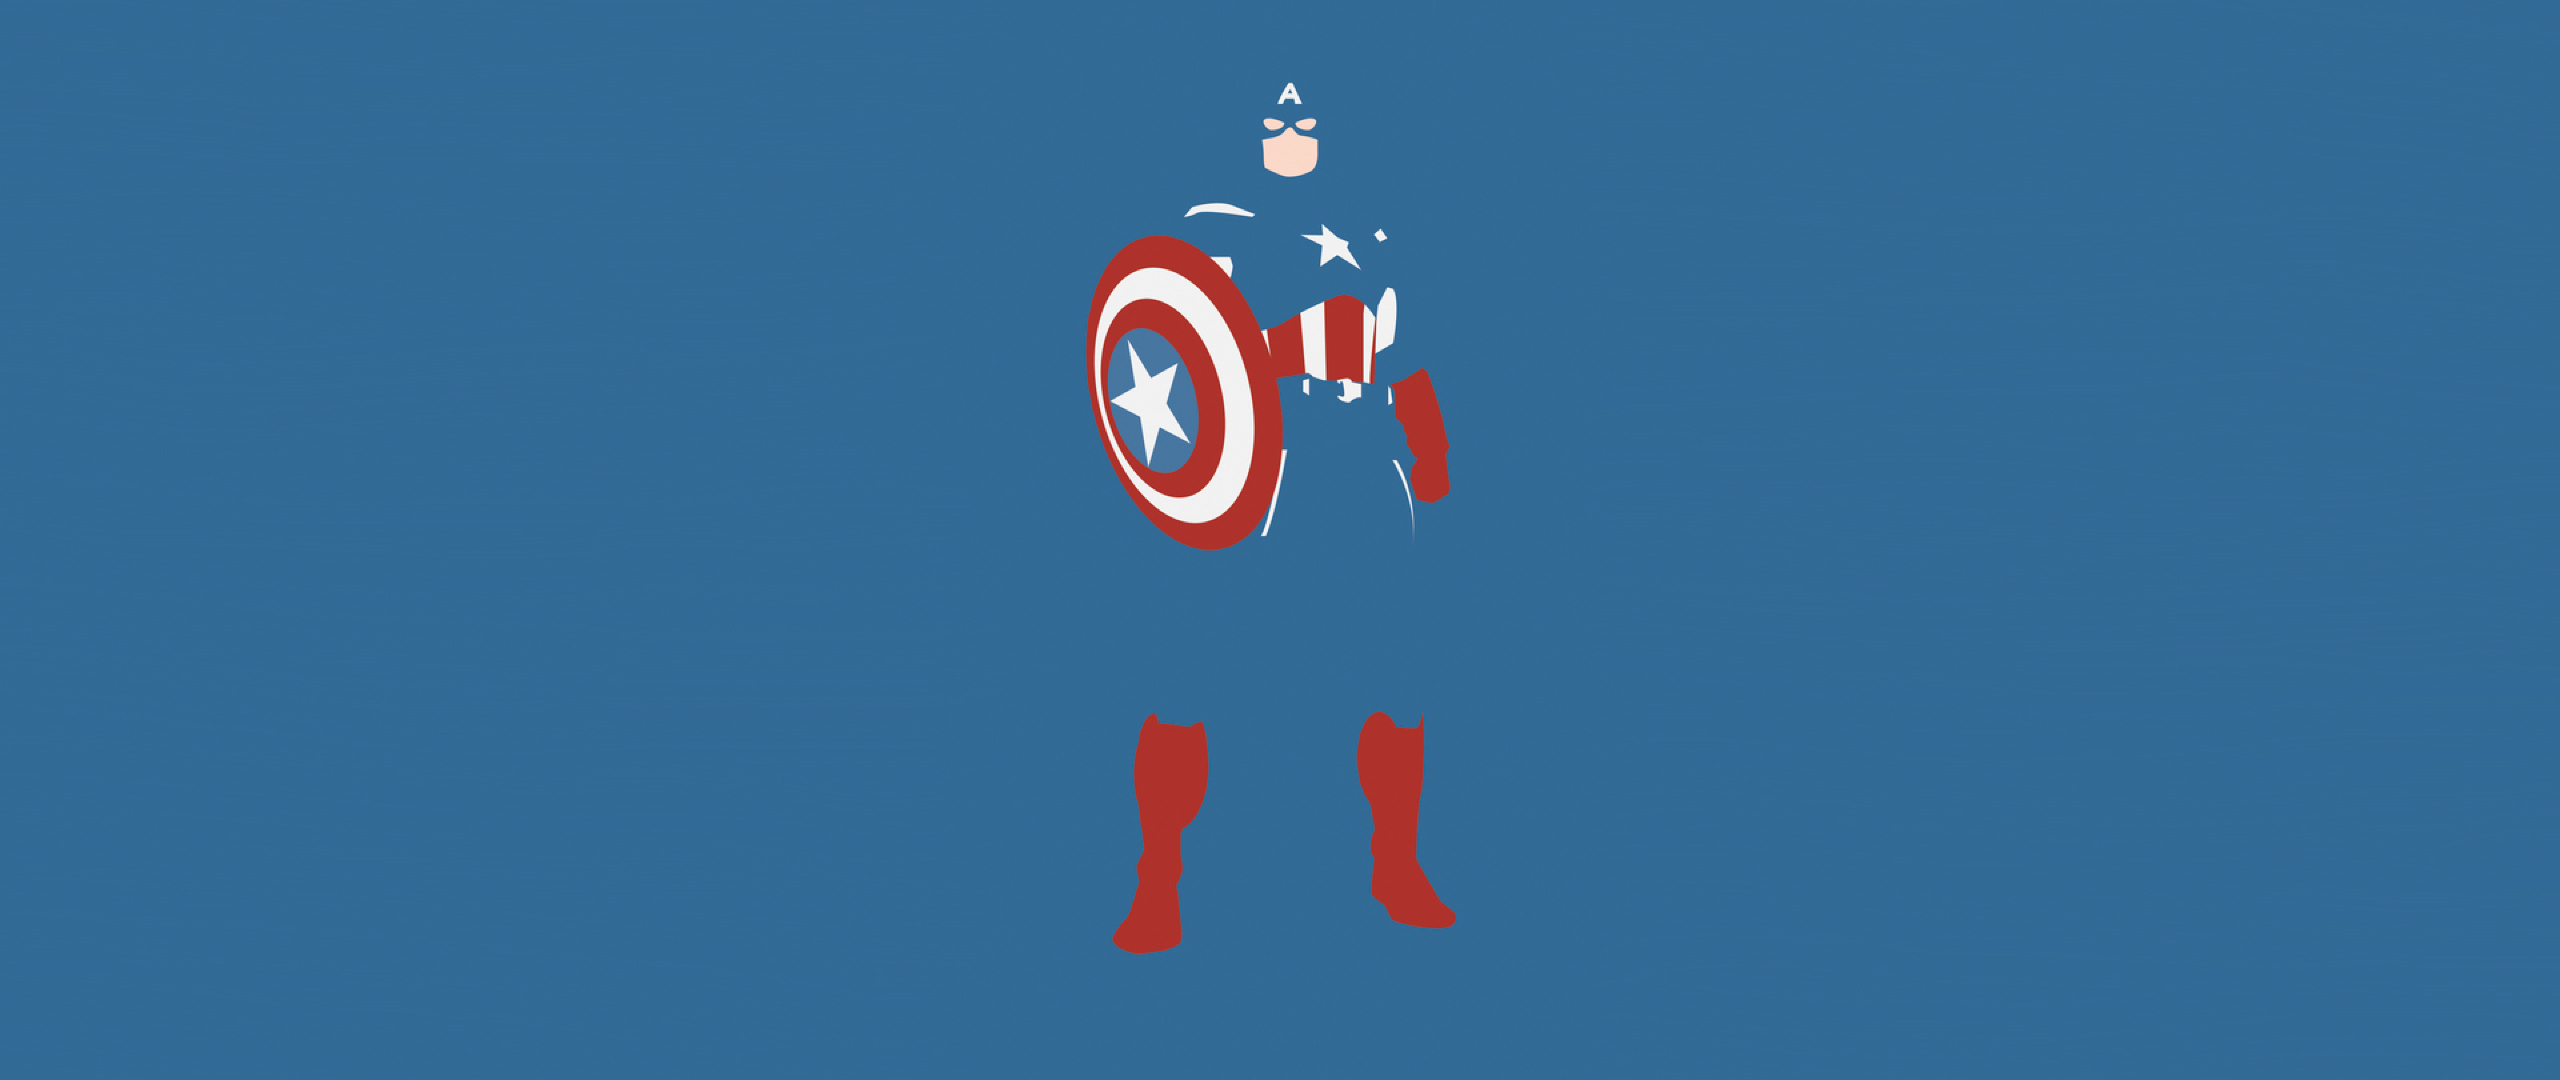 captain america marvel comics minimalism full hd wallpaper